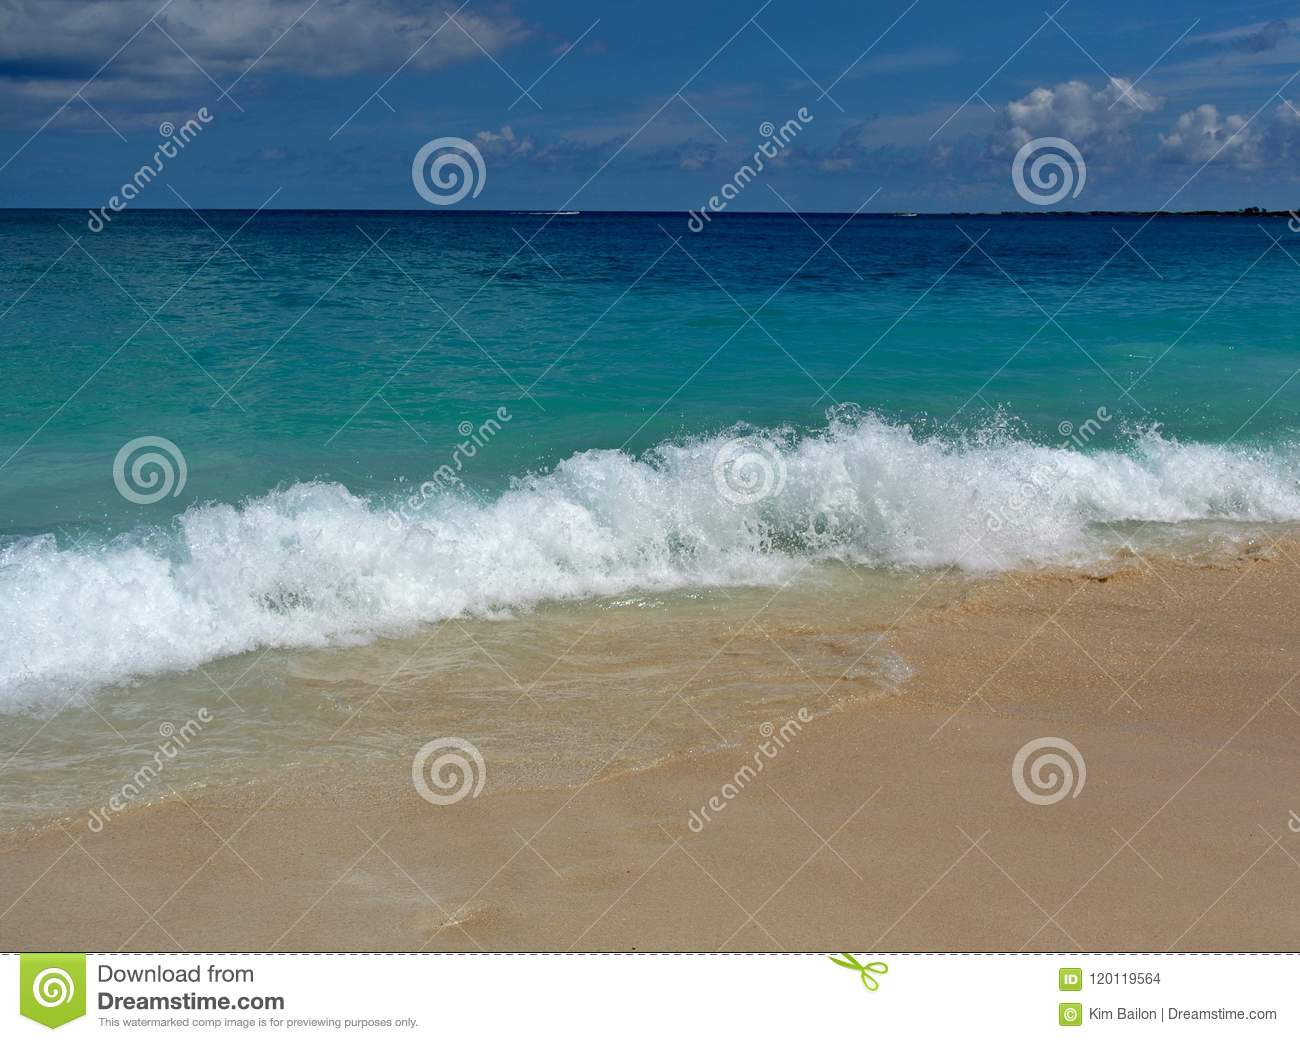 Bahamas beach with crashing waves